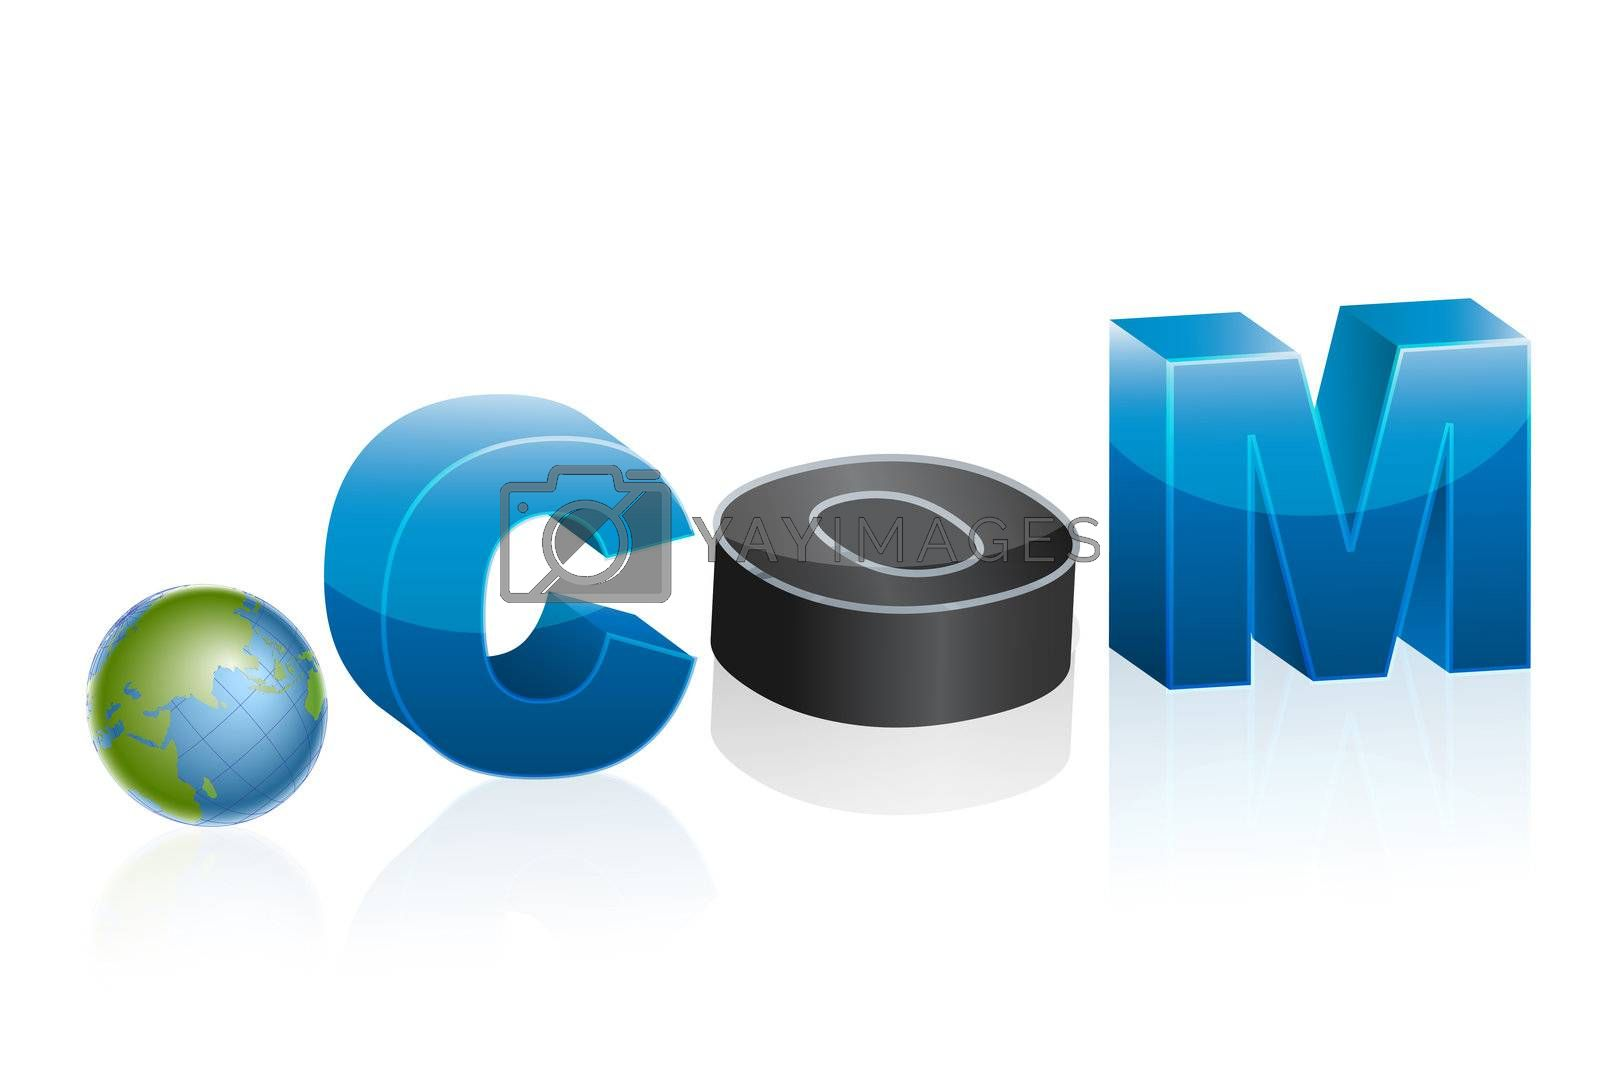 Royalty free image of dot com icon with globe by get4net